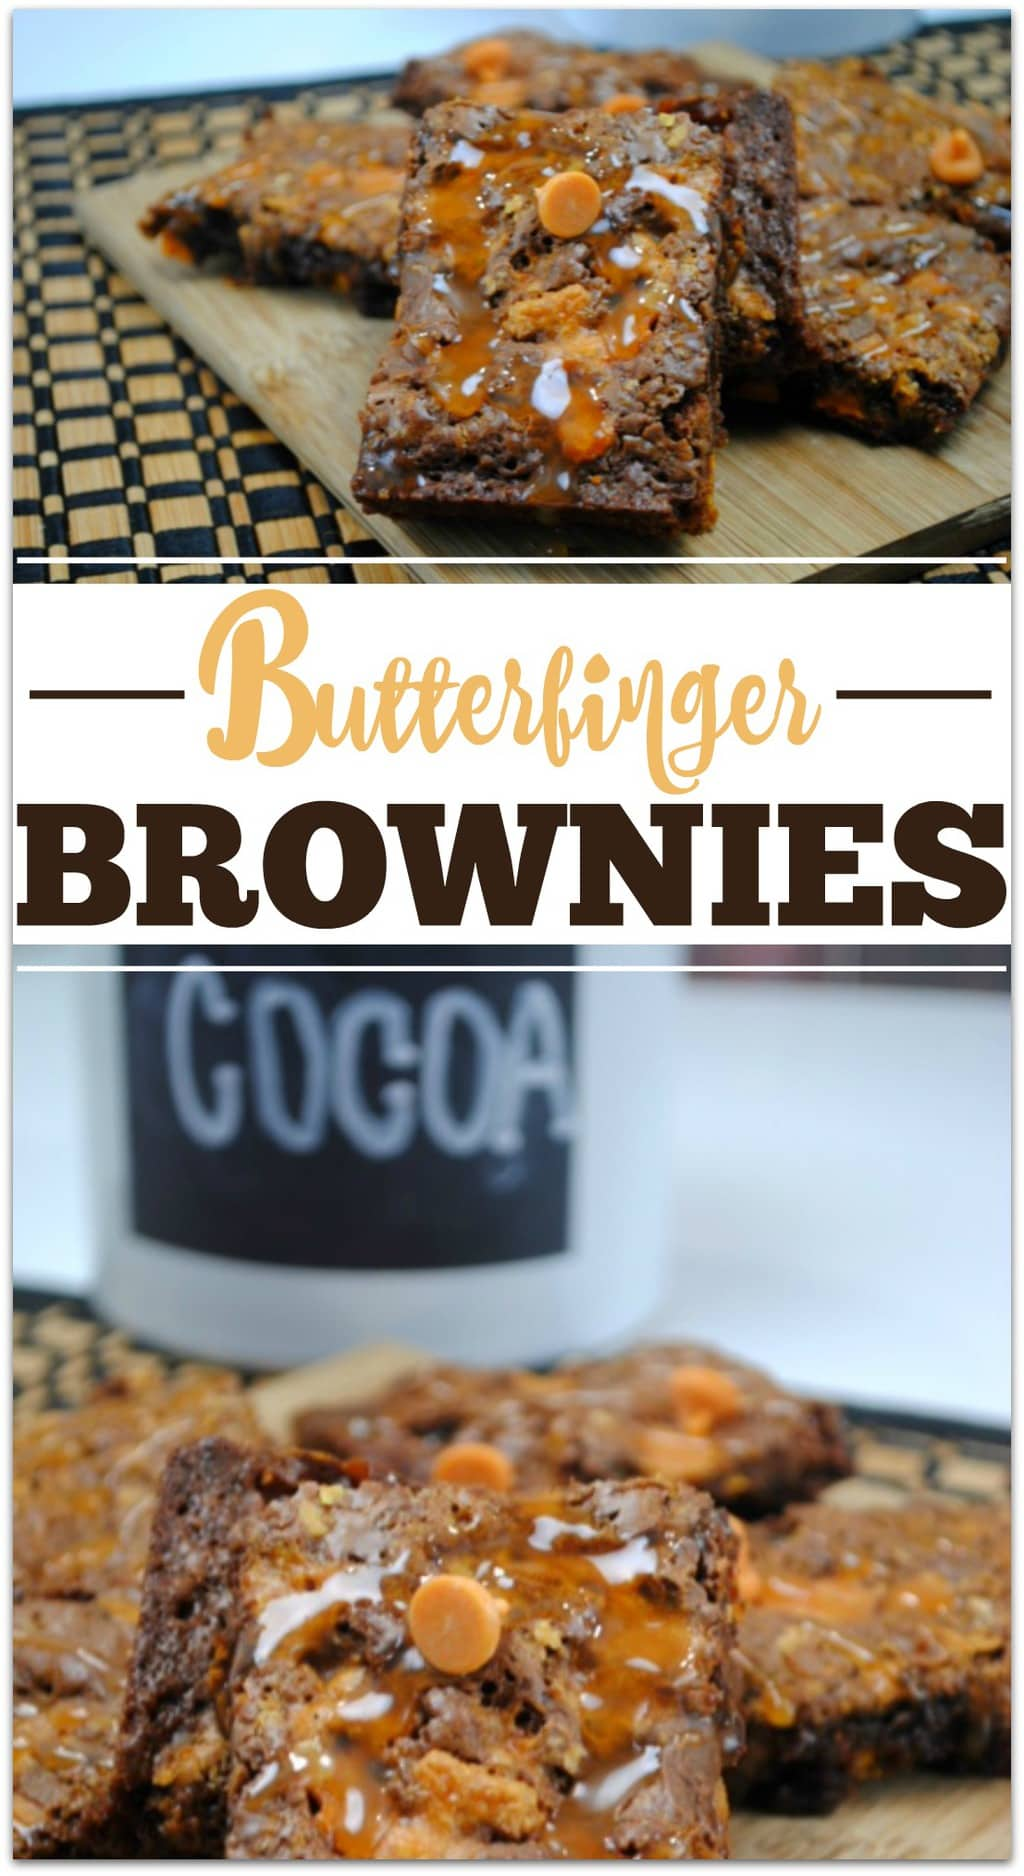 Everyone loves brownies, and these Butterfinger Brownies are the bomb! This dessert will be the hit at any party, and it's such an easy recipe!